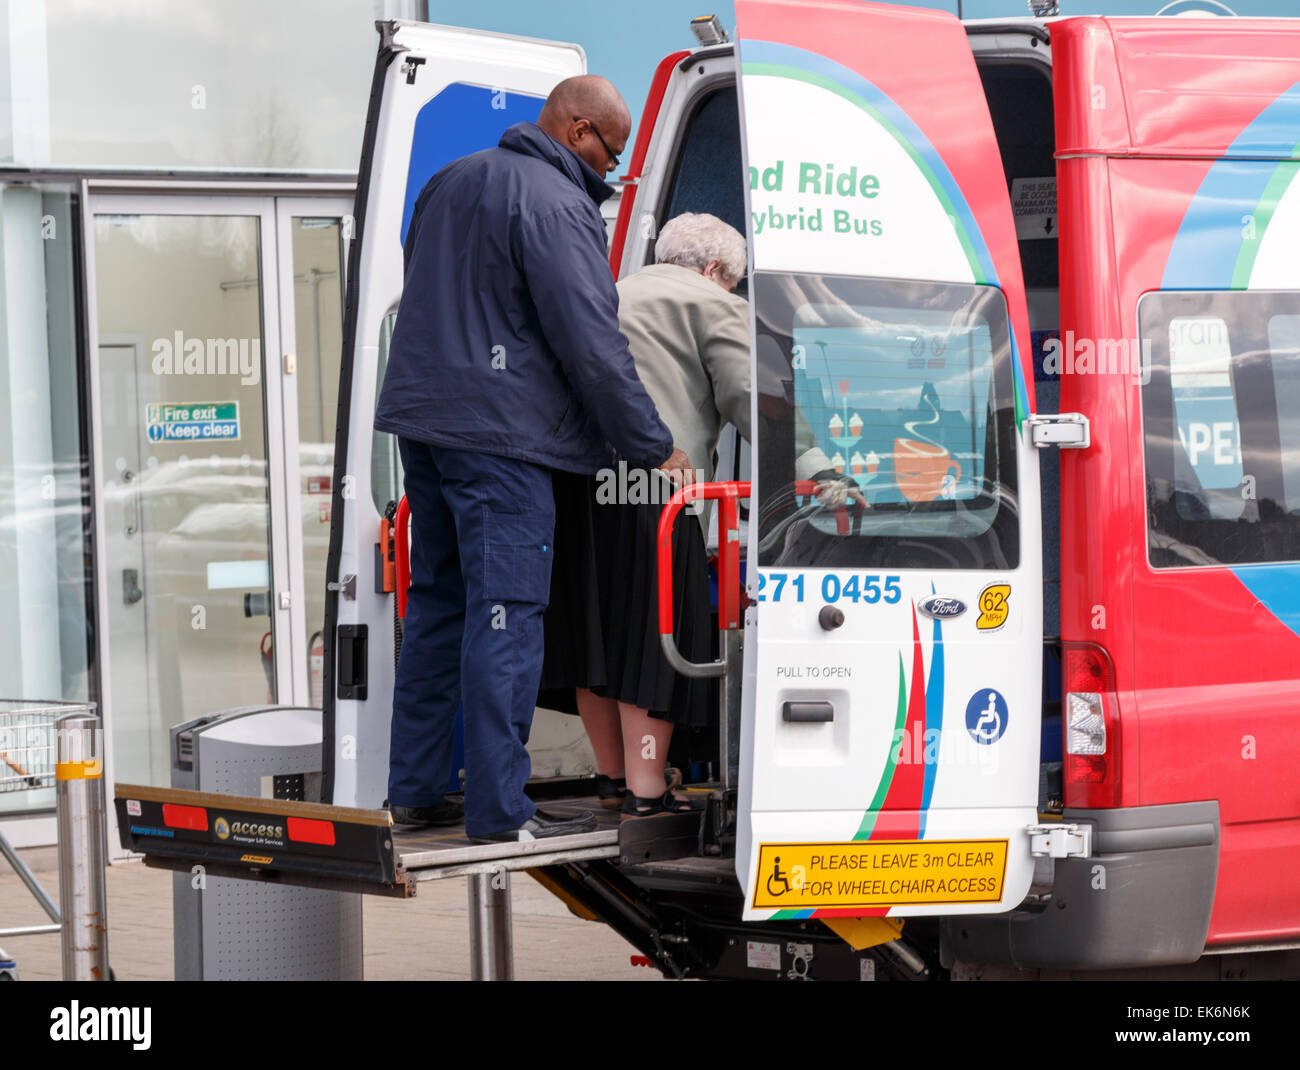 An elderly lady on a lift at the rear of a disabled park and ride hybrid minibus at a shopping centre in Coventry. Stock Photo